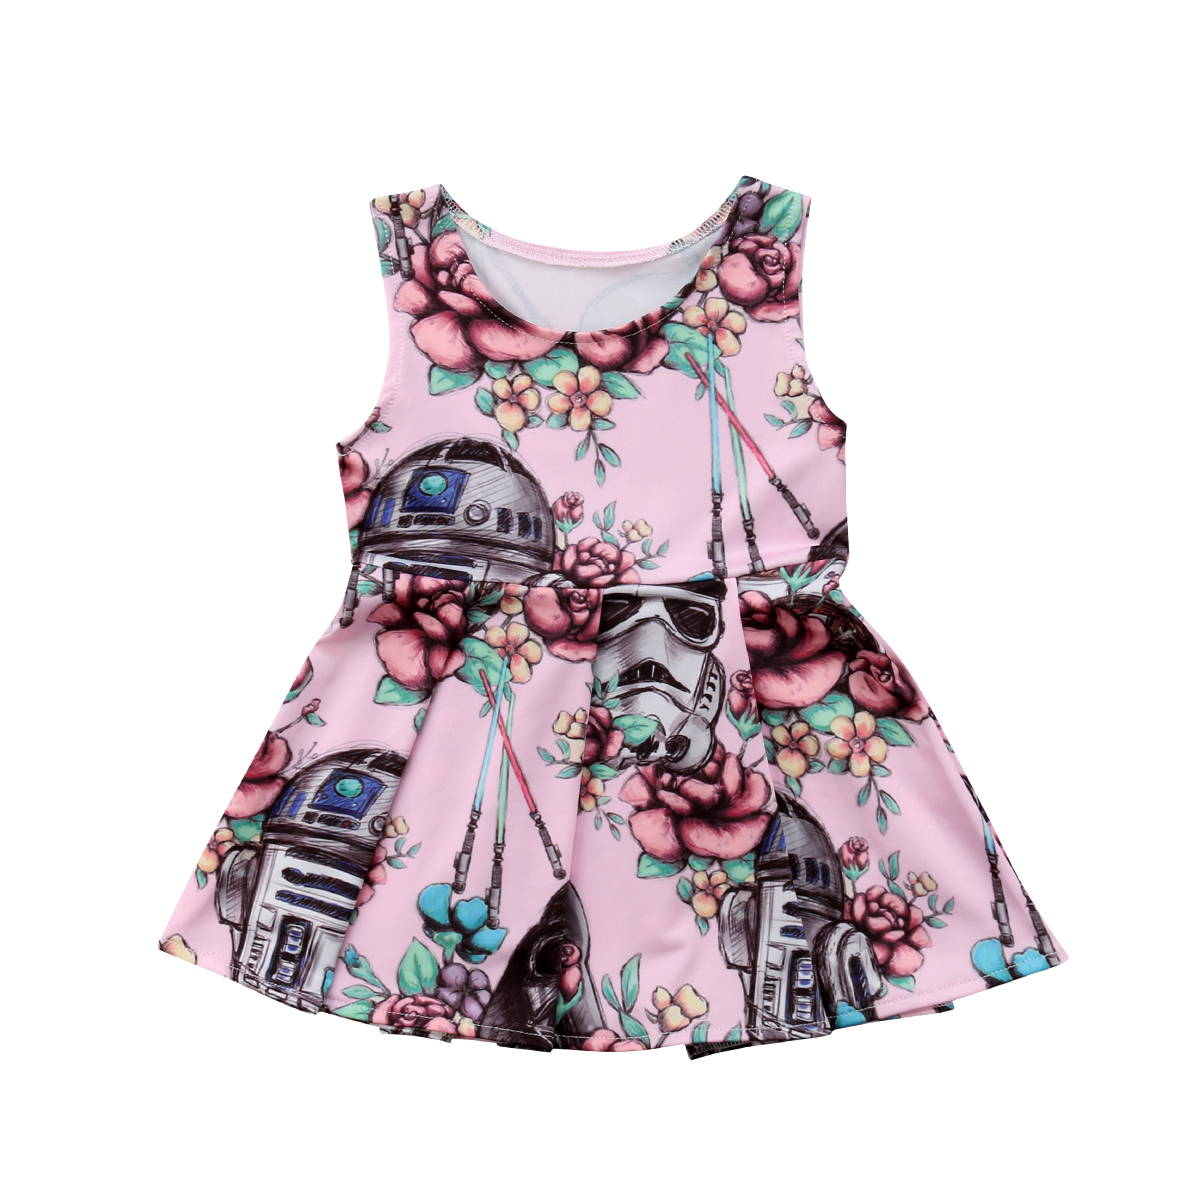 Newborn Toddler Baby Girl Animal Summer Party Pageant Dress Sundress Clothes US